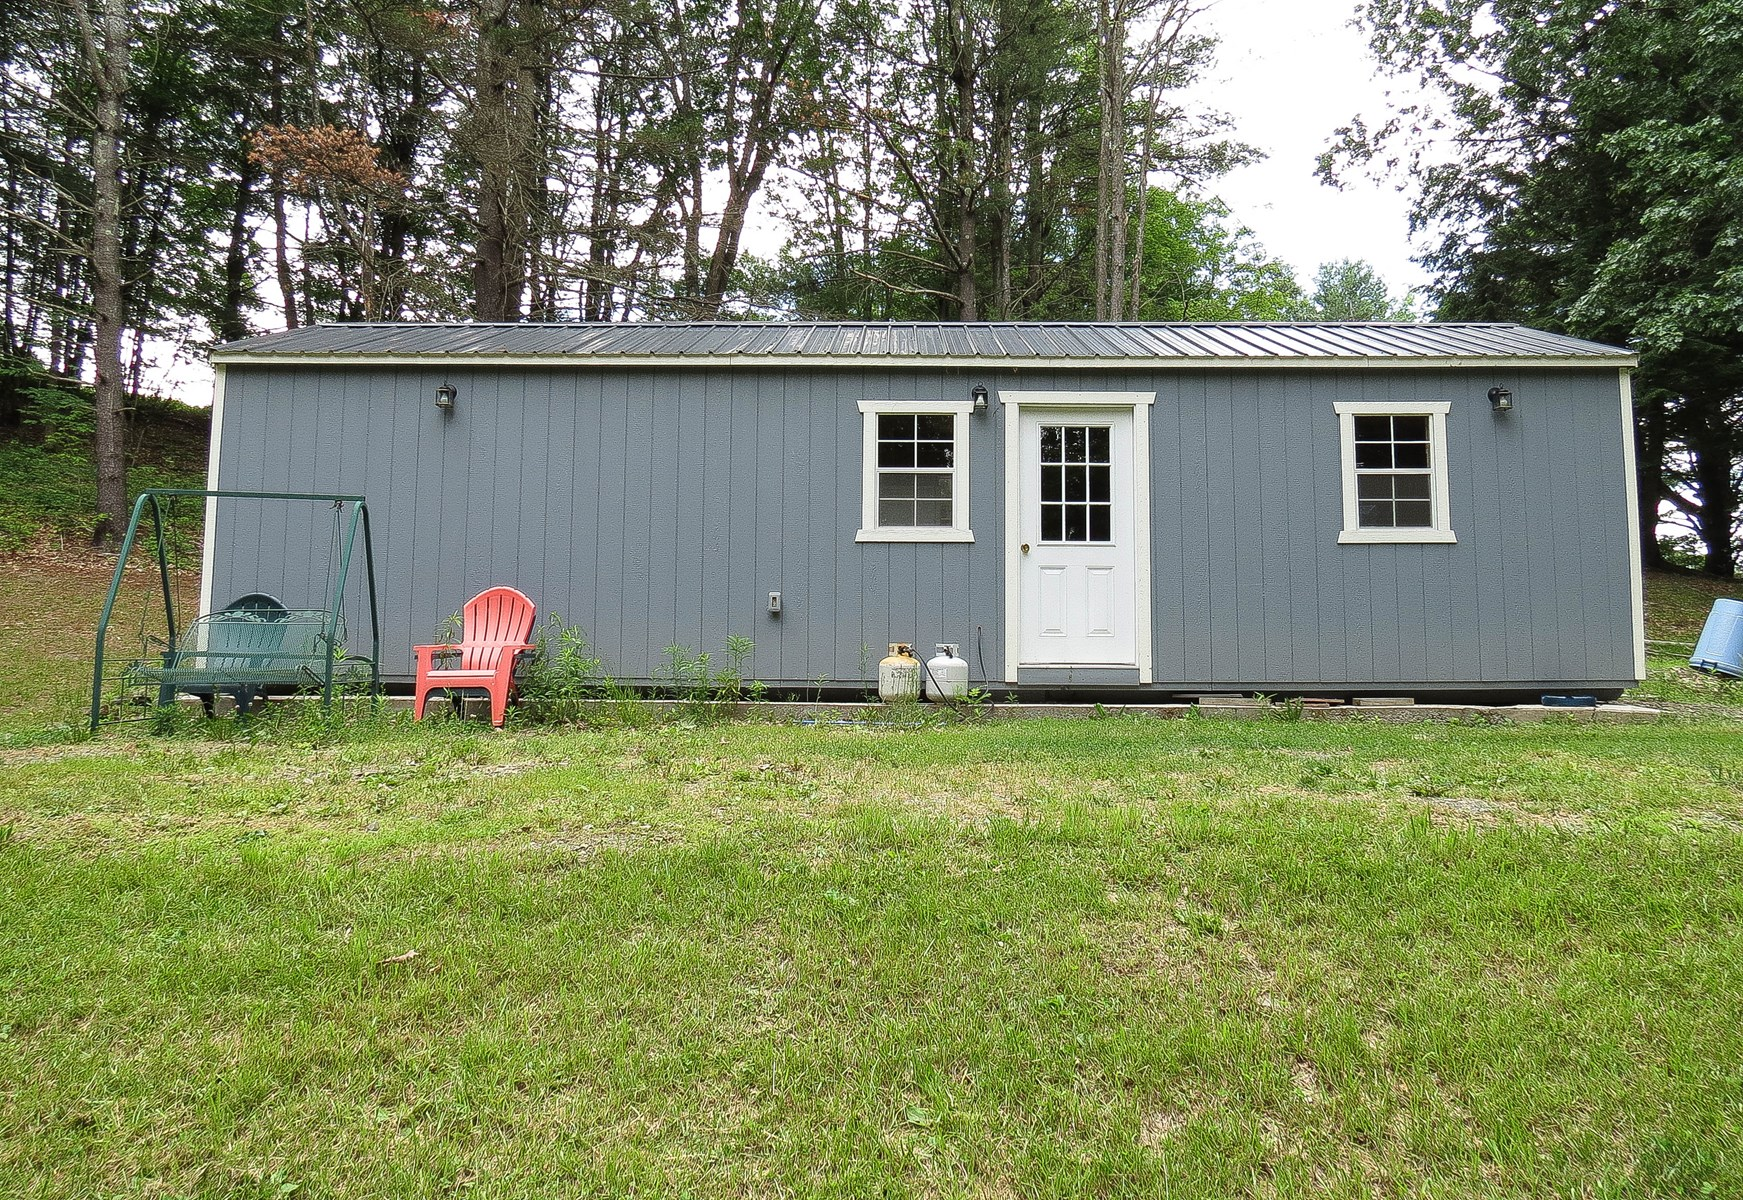 Tioga County, PA Tiny Home or Camp Near Game Lands For Sale